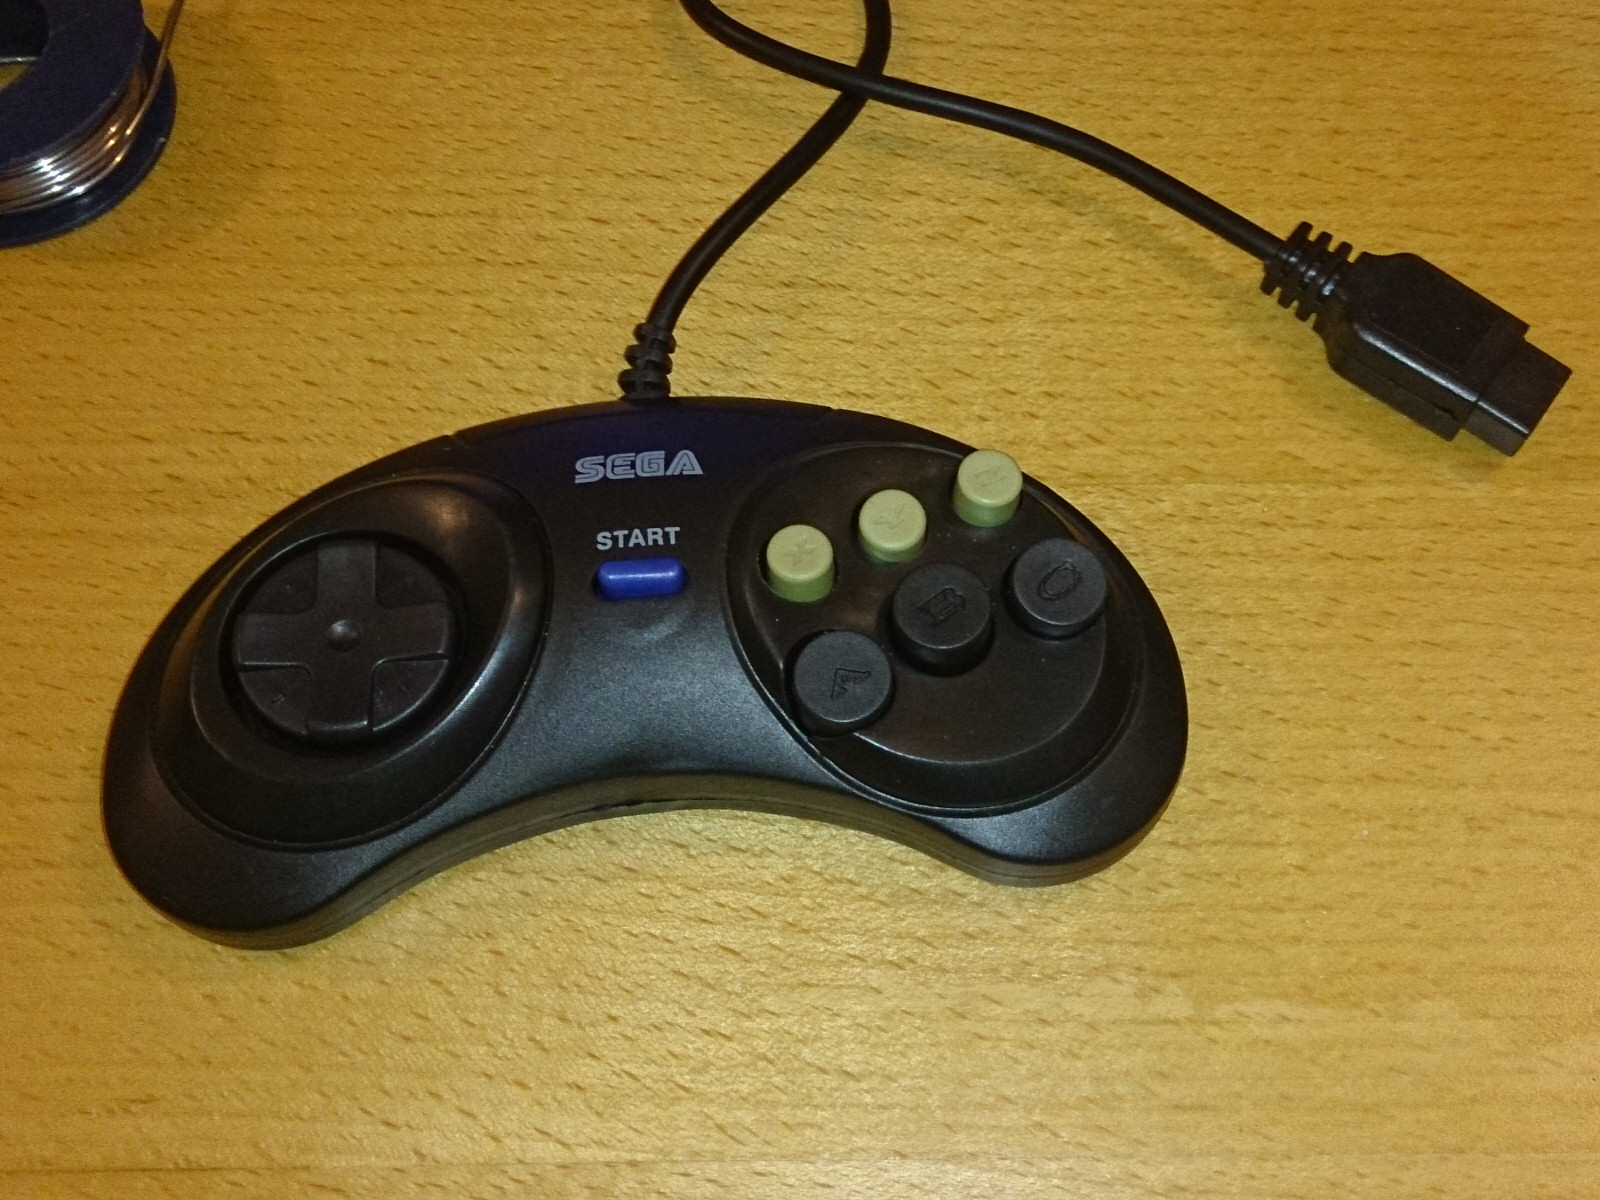 02 controller cheapo sega gamepad mod 16bit dust sega genesis controller wiring diagram at bayanpartner.co